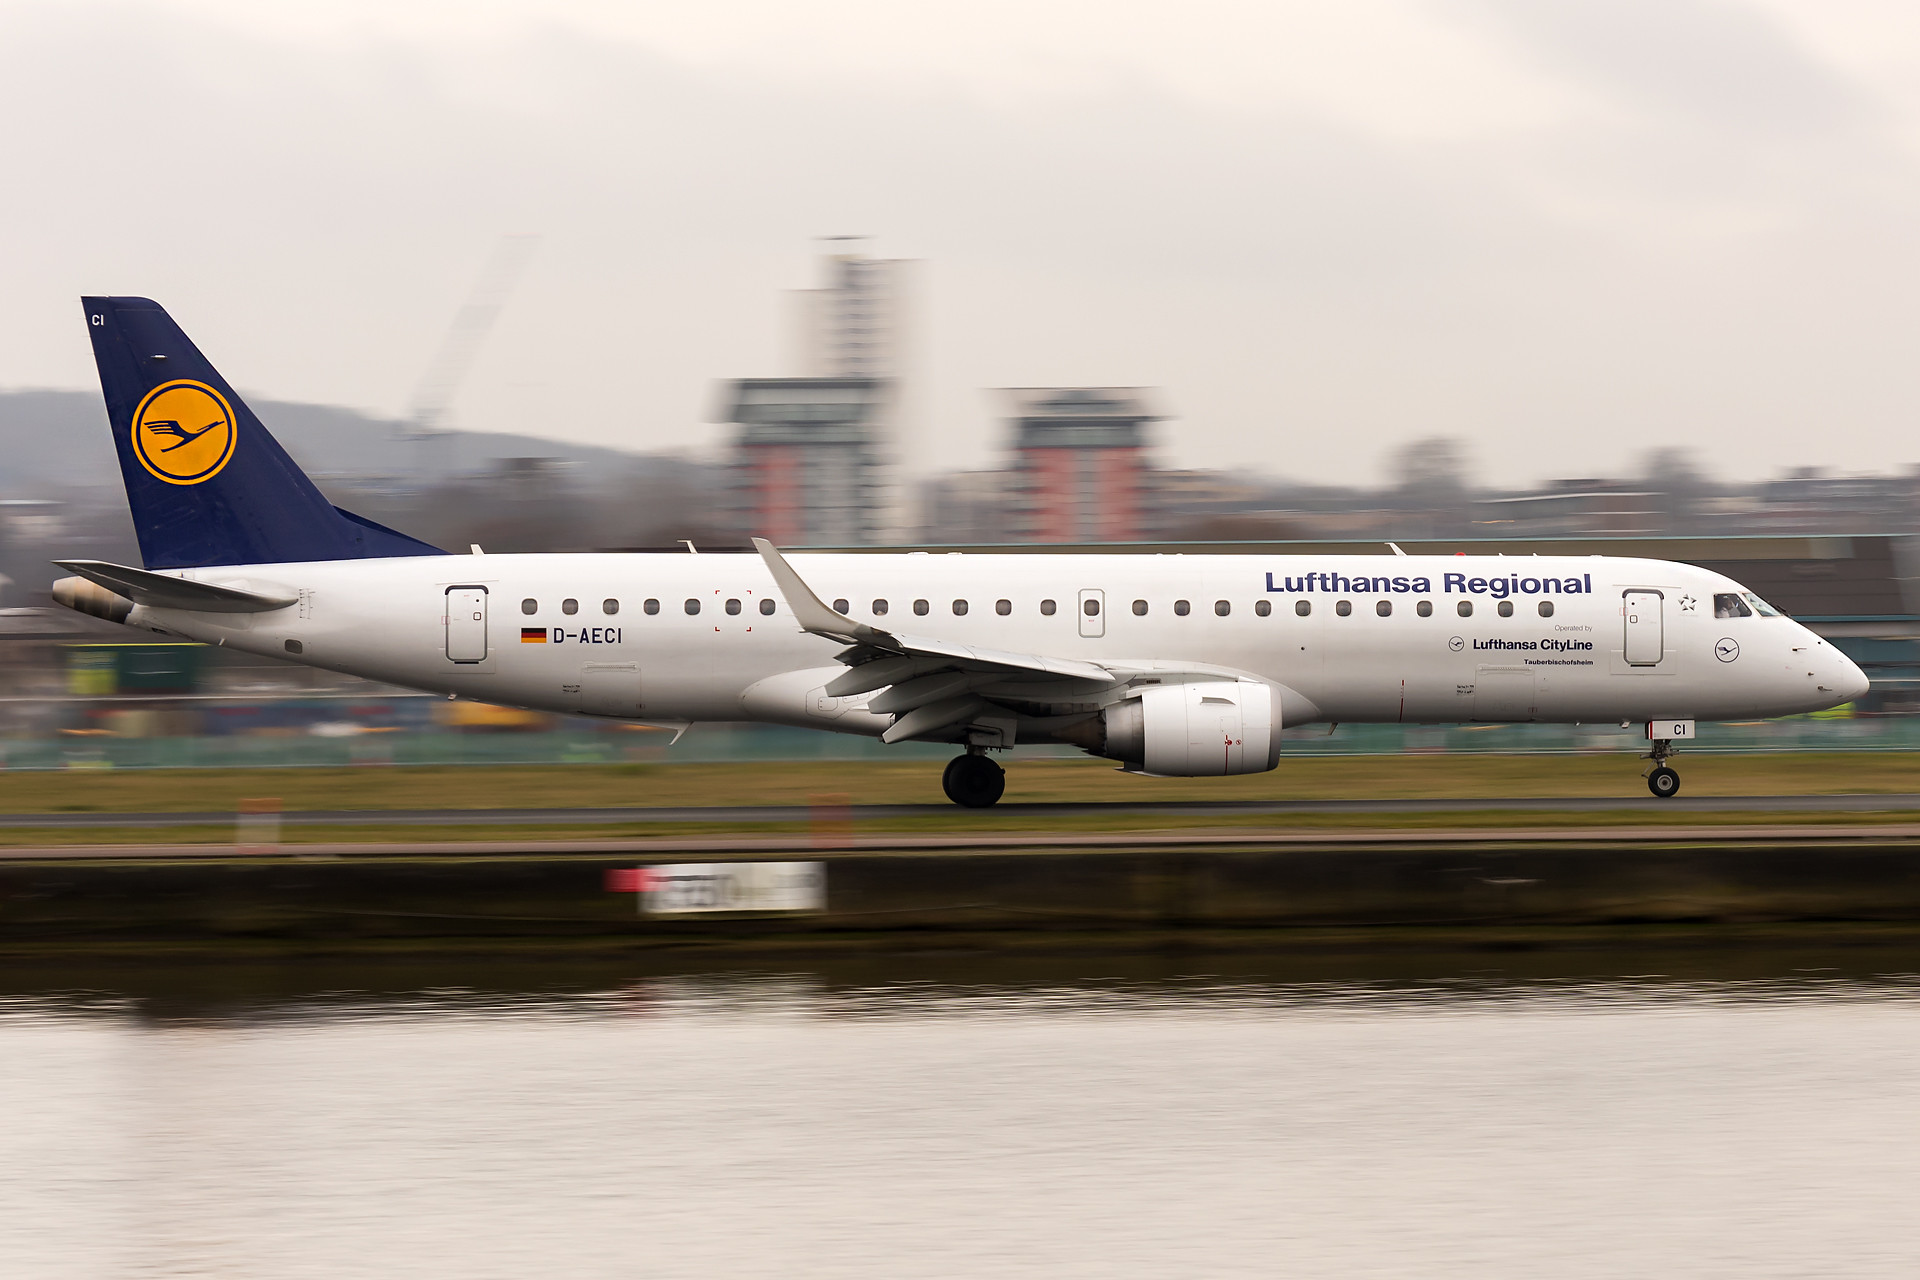 I went to LCY airport one day, but unfortunately, the weather was horrible. Tried to play a bit with the shutter speed. (1/40)